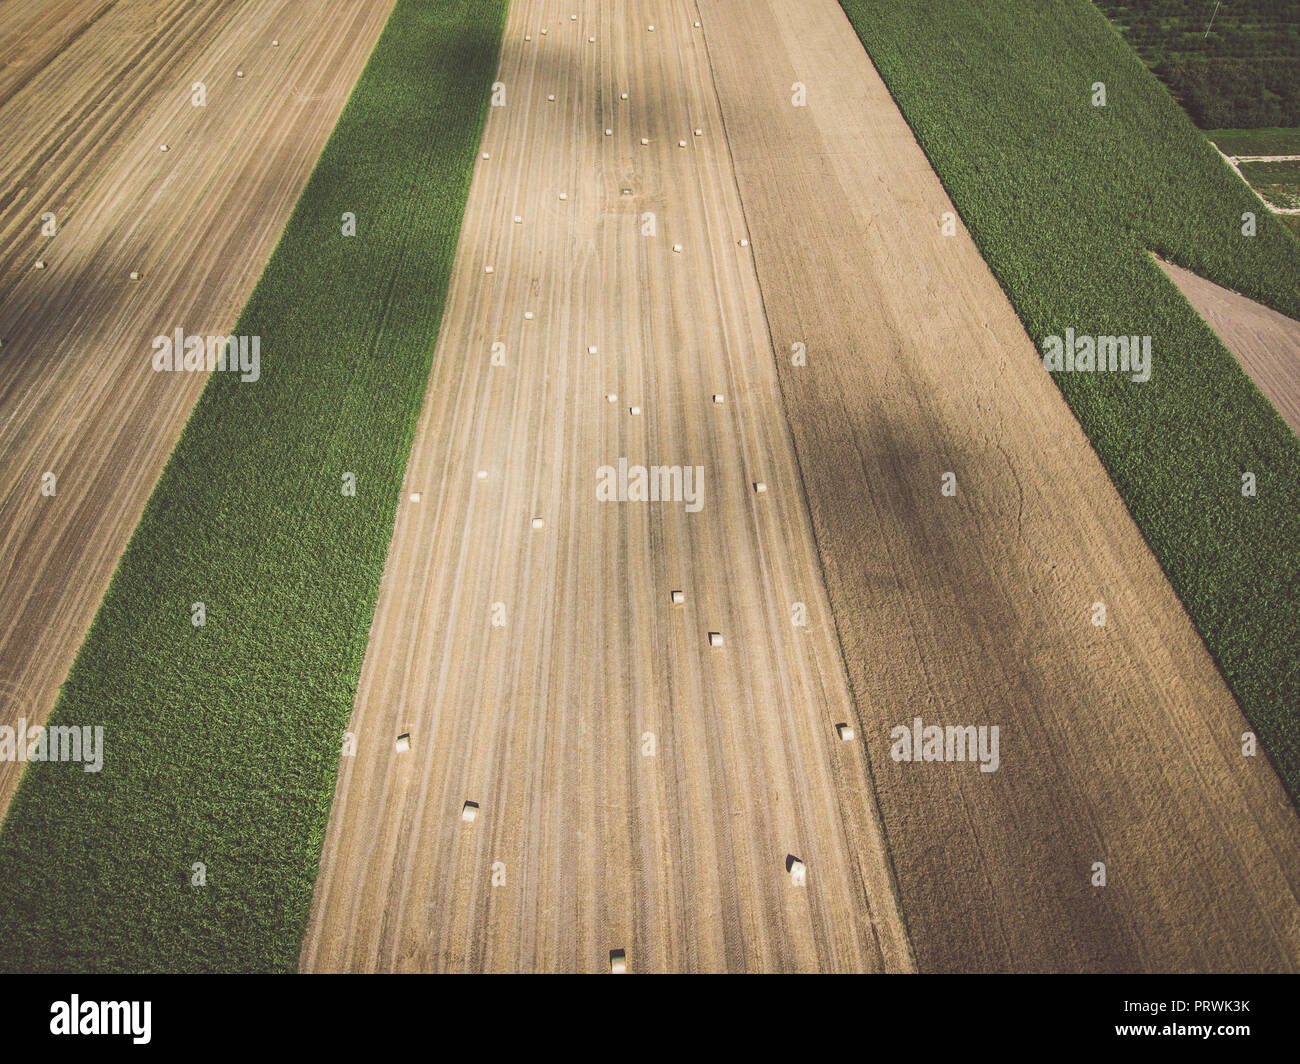 Aerial view of round hay bales on stubble under blue cloudy sky, diminishing perspective - Stock Image